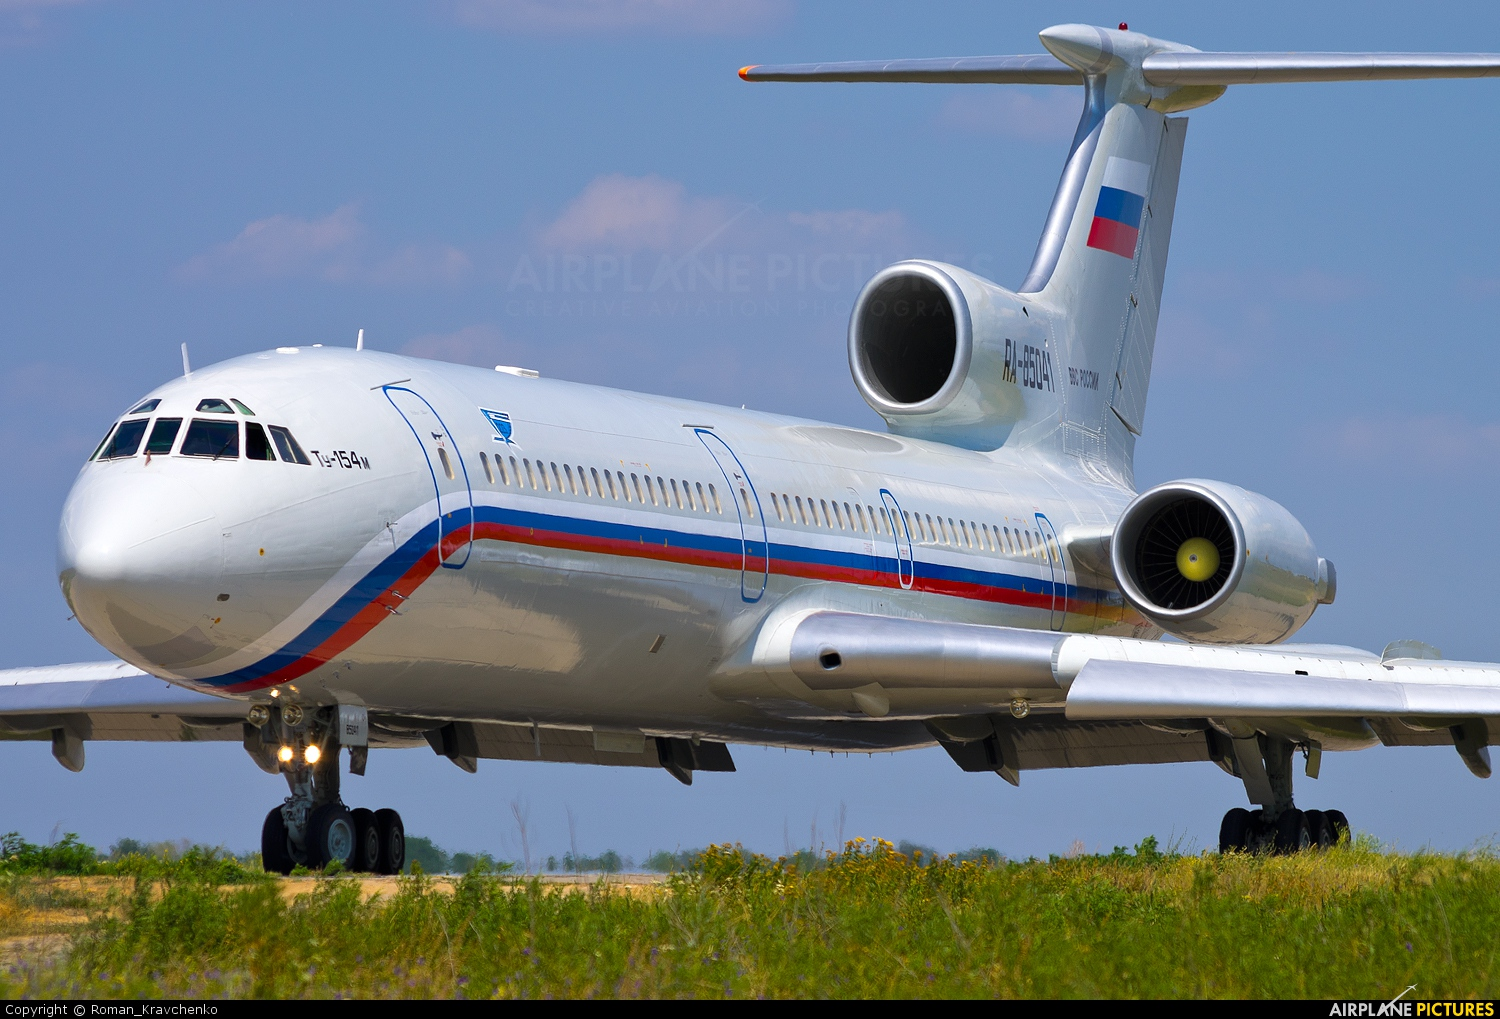 Russia - Air Force RA-85041 aircraft at Undisclosed Location